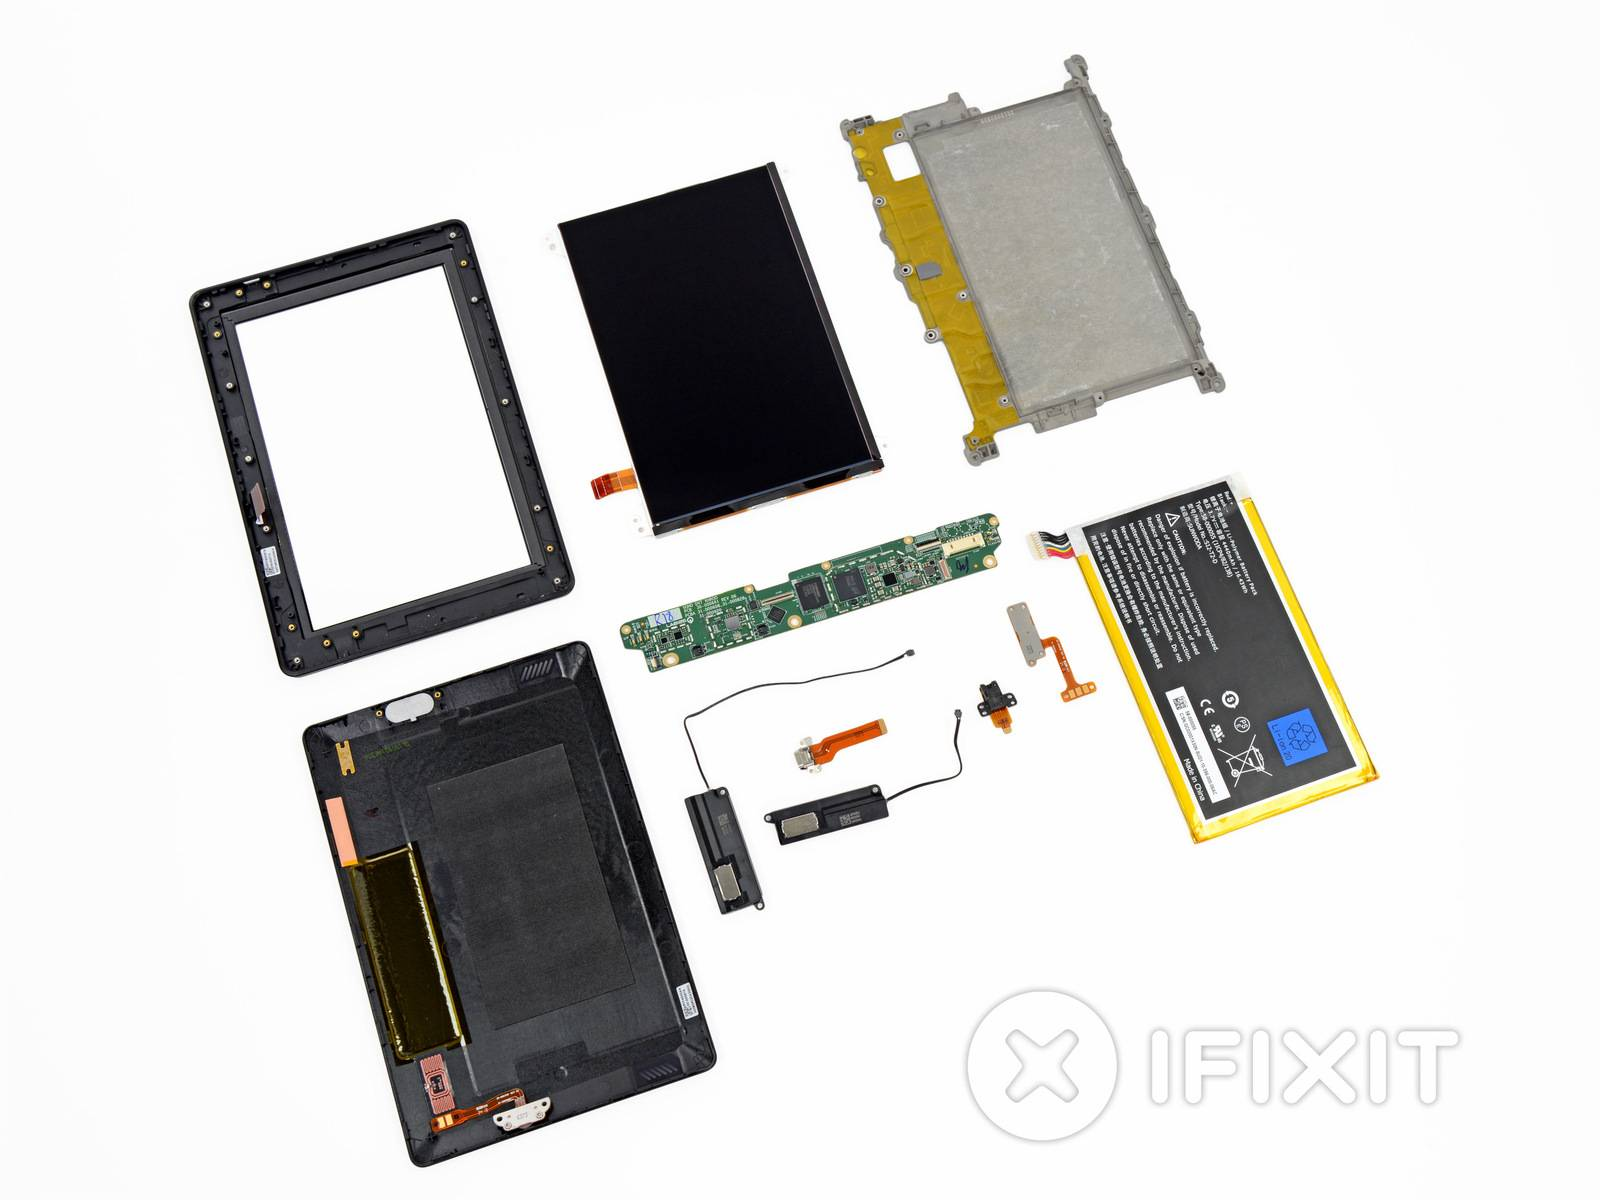 amazon-kindle-fire-hd-2013-teardown